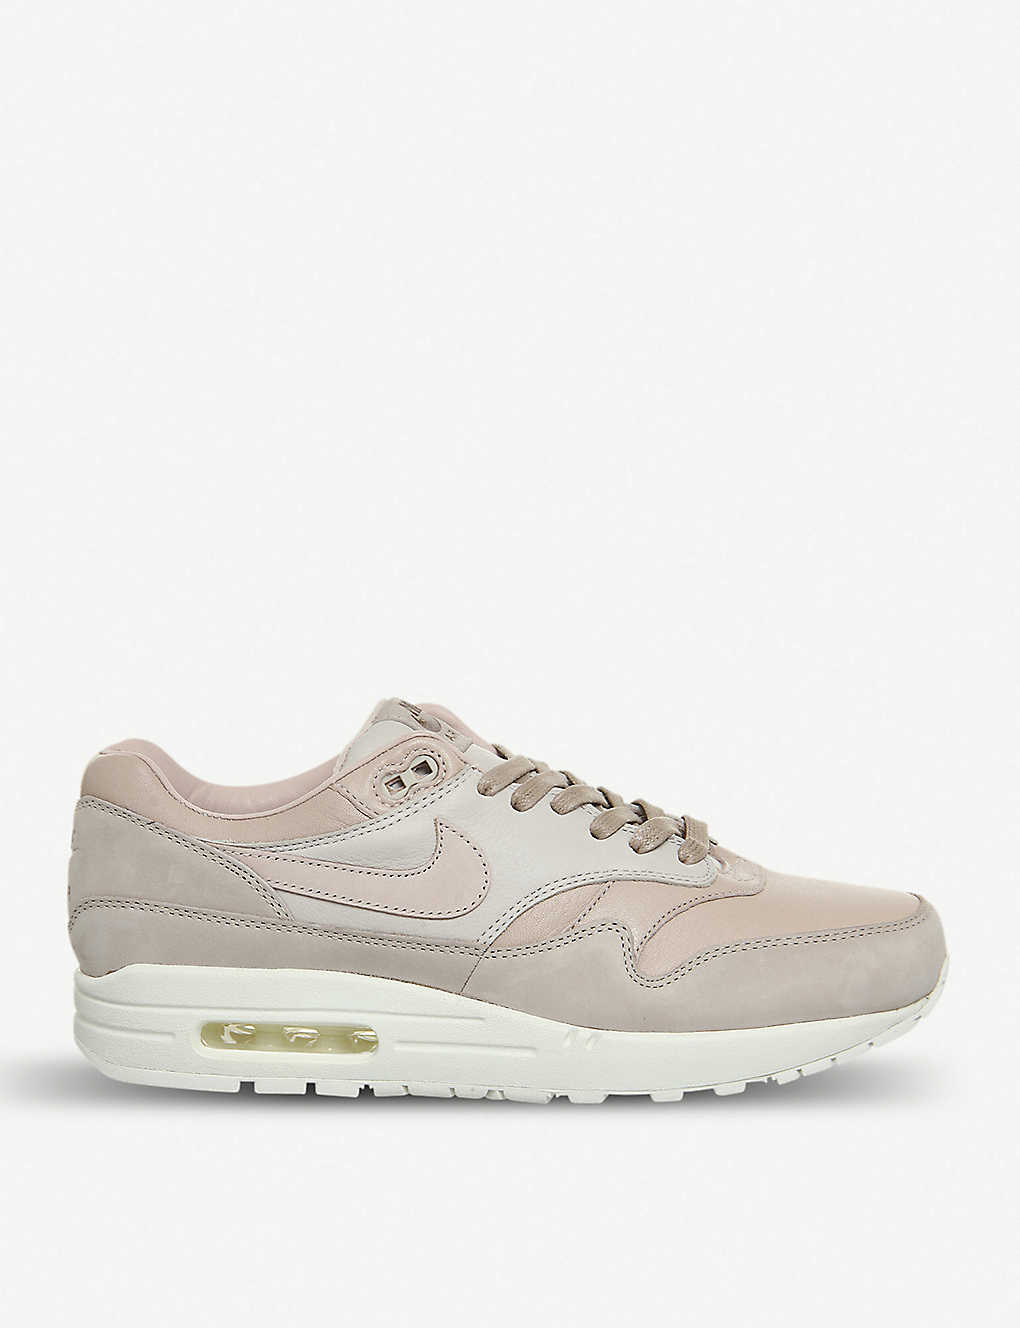 f73841b9cc Nike Lab Air Max 1 Pinnacle leather trainers - Sand particle beige ...